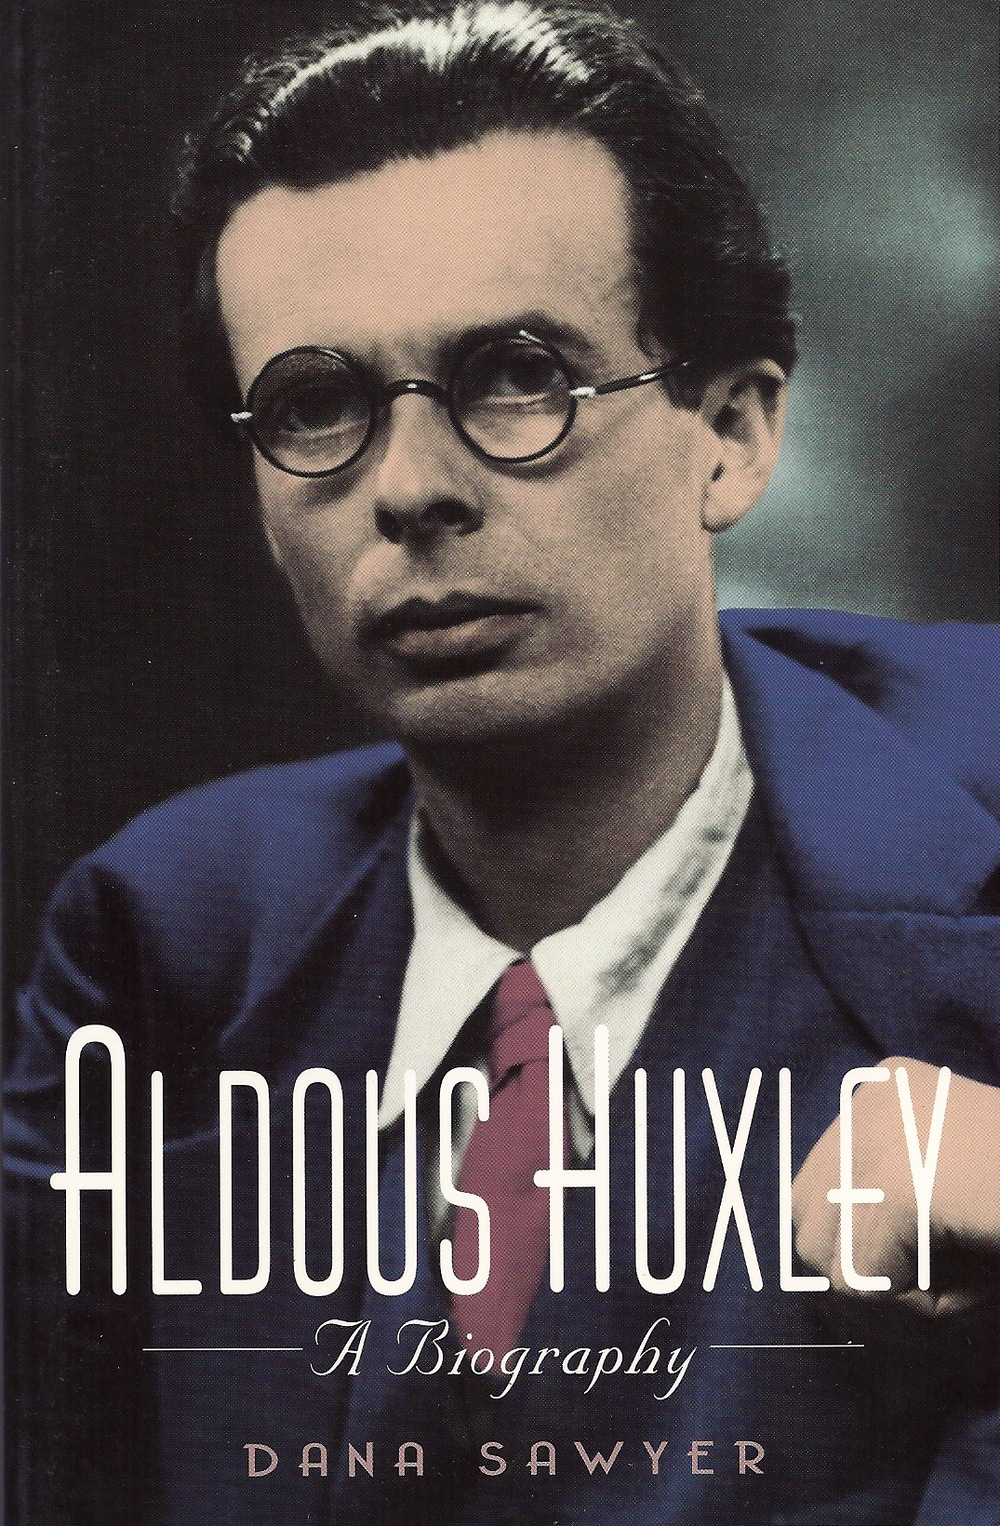 Aldous Huxley, A Biography  (New York: Crossroad Publishing, 2002).